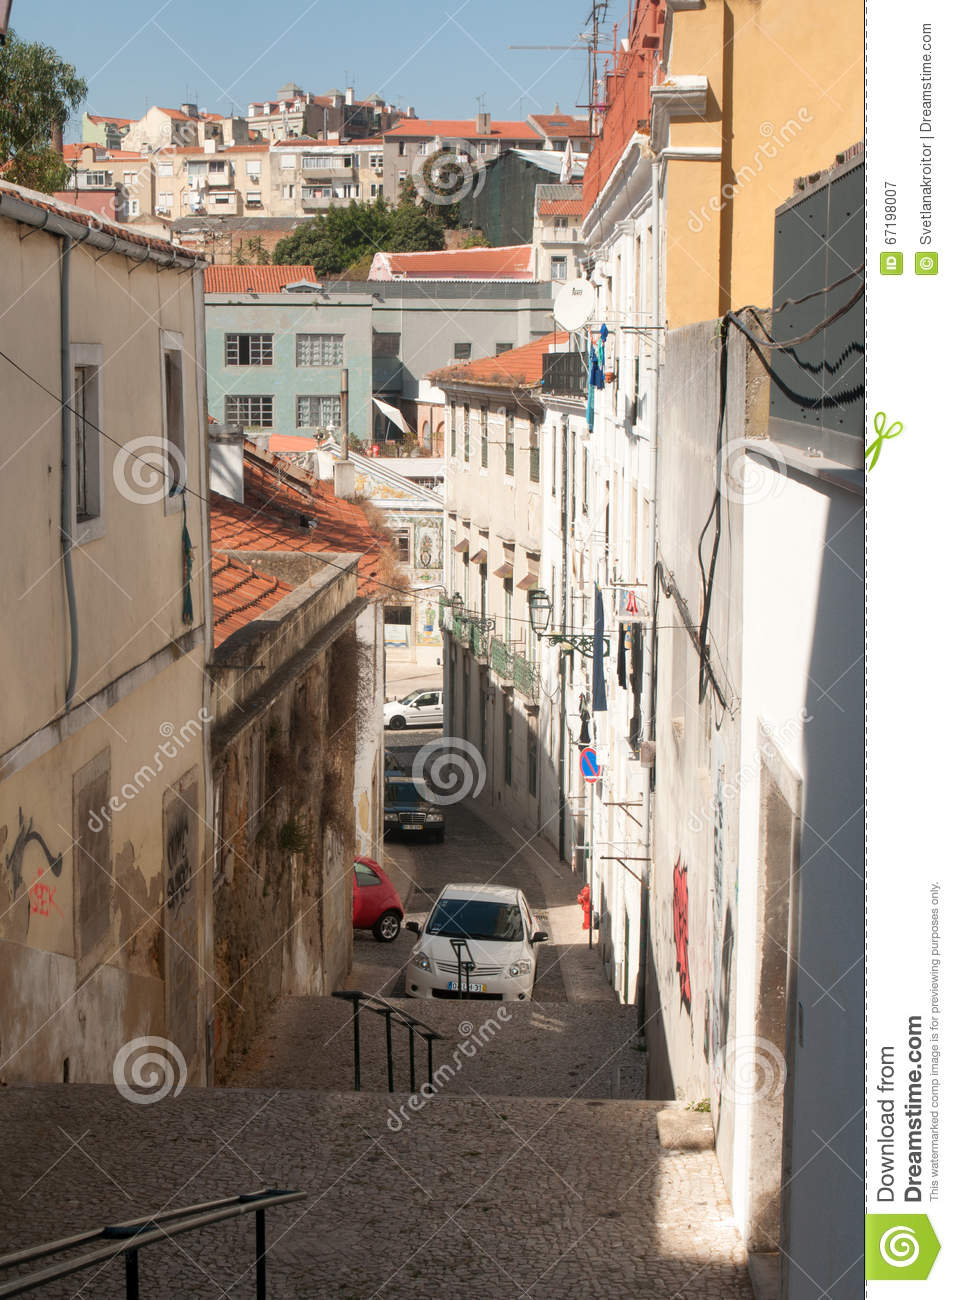 lisbon portugal september 22 2015 a street view of historic